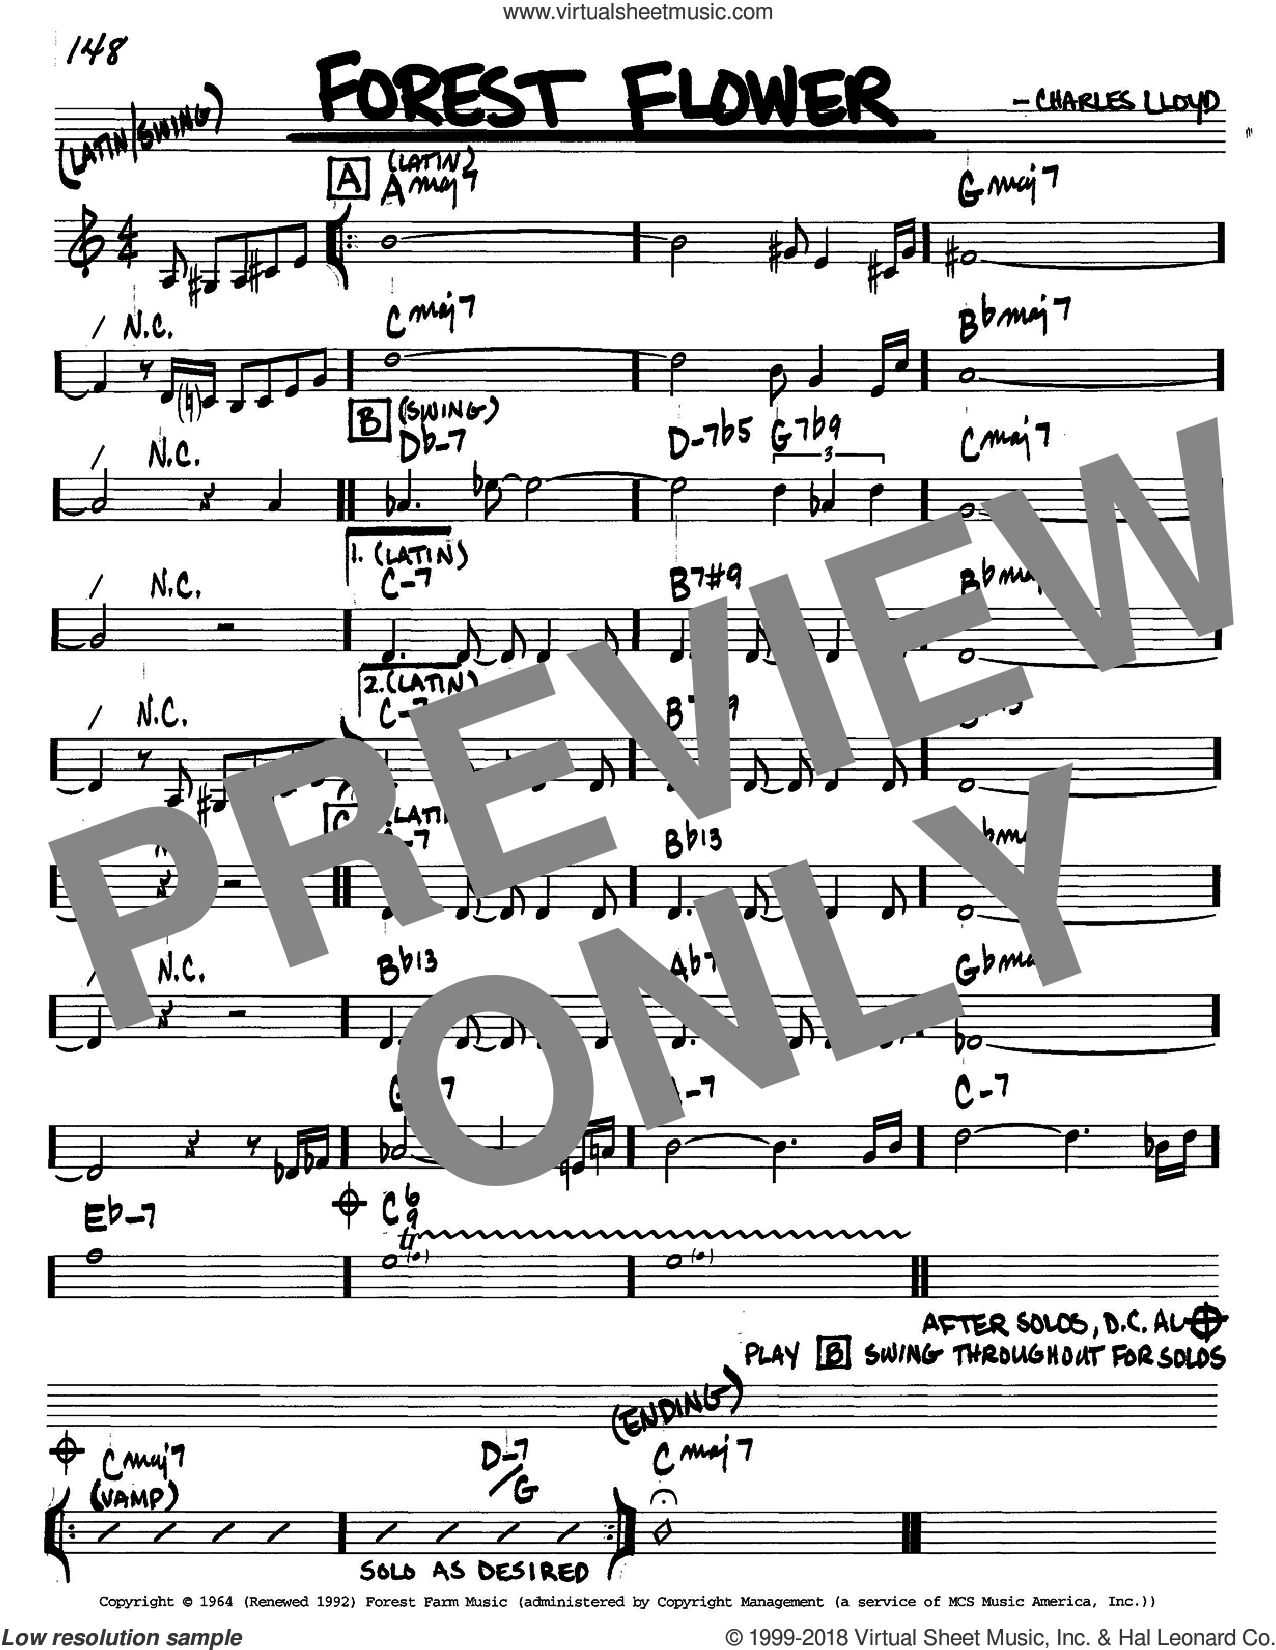 Forest Flower sheet music for voice and other instruments (C) by Charles Lloyd. Score Image Preview.